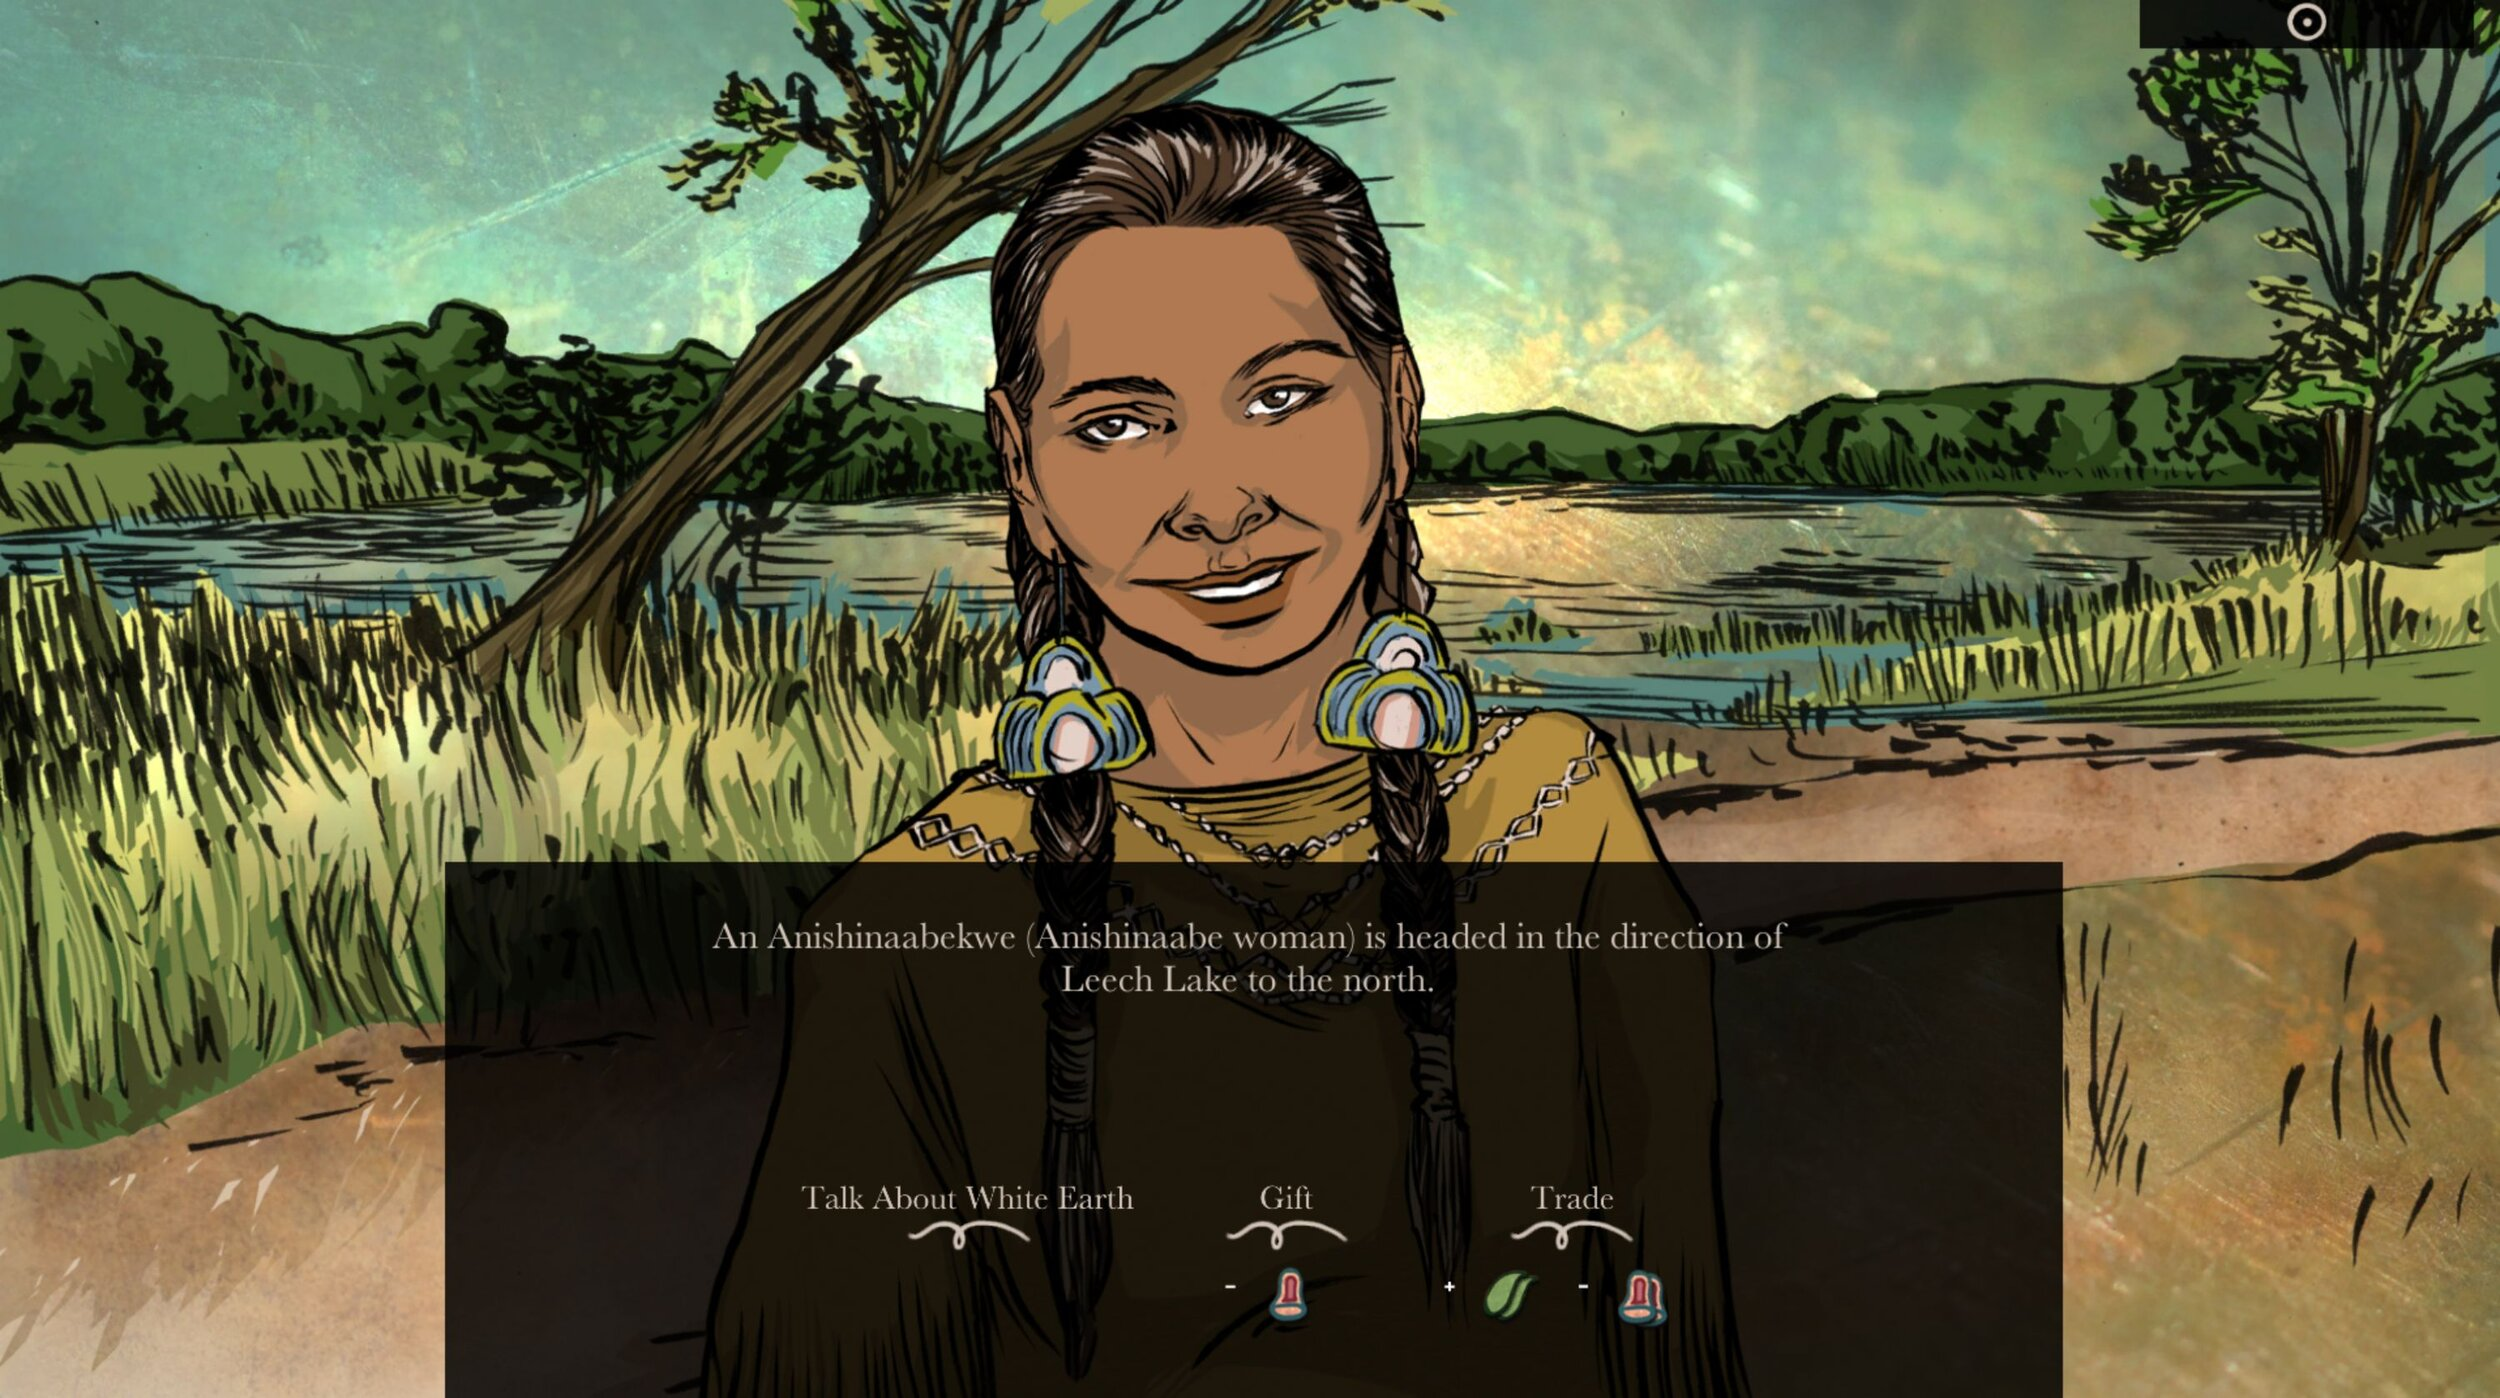 When Rivers Were Trails - Artist: Nichlas Emmons (Miami and Shawnee), Elizabeth LaPensée (Anishinaabe and Métis), Weshoyot Alvitre (Tongva), Supaman (Apsalooke)USA   2019   GameAll AgesWith contributions from over twenty Indigenous writers, follow an Anishinaabe person who has been displaced from their territory in Fond du Lac in Minnesota and must survive a journey to California due to the impact of allotment acts on Indigenous nations. Developed in collaboration with the Indian Land Tenure Foundation and Michigan State University's Games for Entertainment & Learning Lab.The WRWT Team is a collective of Indigenous game designers, artists, writers and musicians who were brought together by the Indian Land Tenure Foundation and Michigan State University's Games for Entertainment & Learning Lab to develop When Rivers Were Trails. This team includes Elizabeth LaPensee, Nichlas Emmons, Weshoyot Alvitre, Supaman, Allen Turner, Carl Petersen, Sara Siestreem and many more.